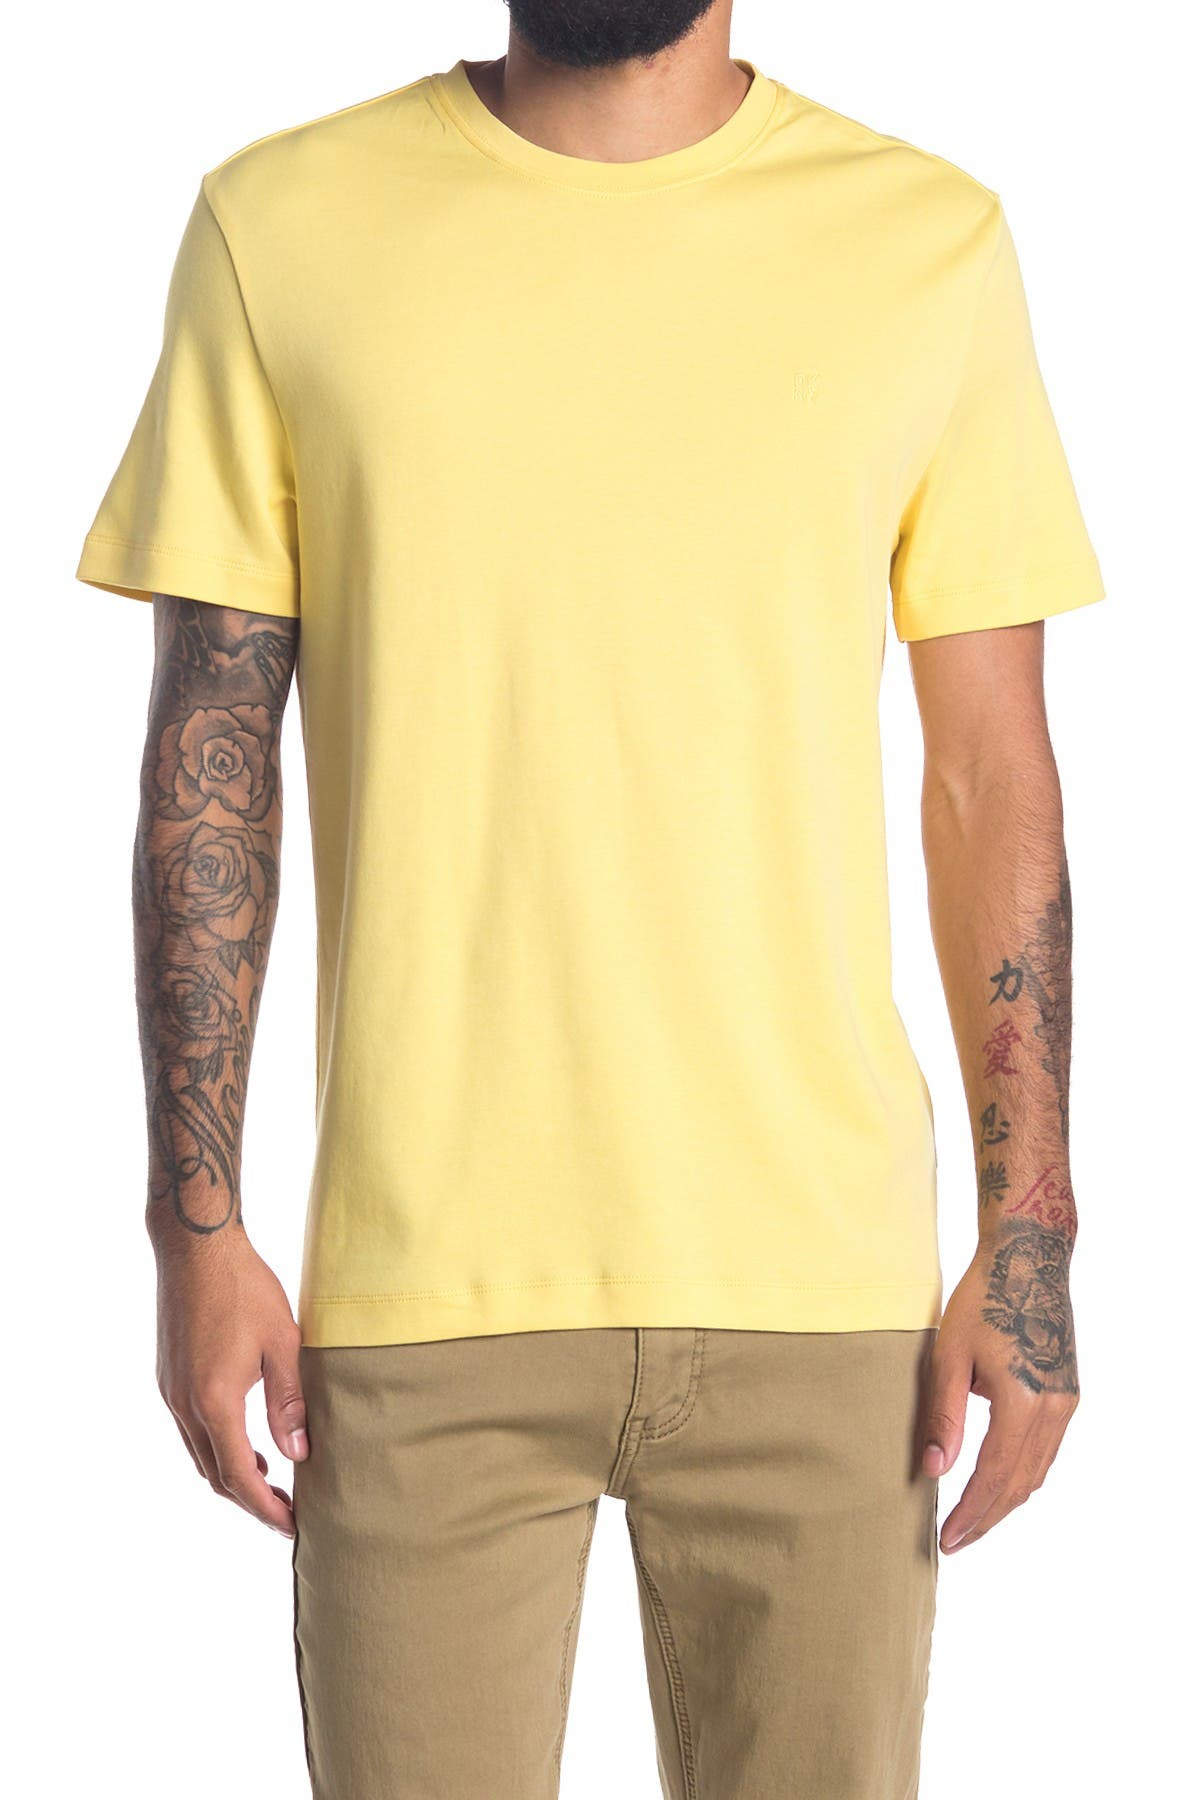 Image of DKNY Short Sleeve Basic T-Shirt